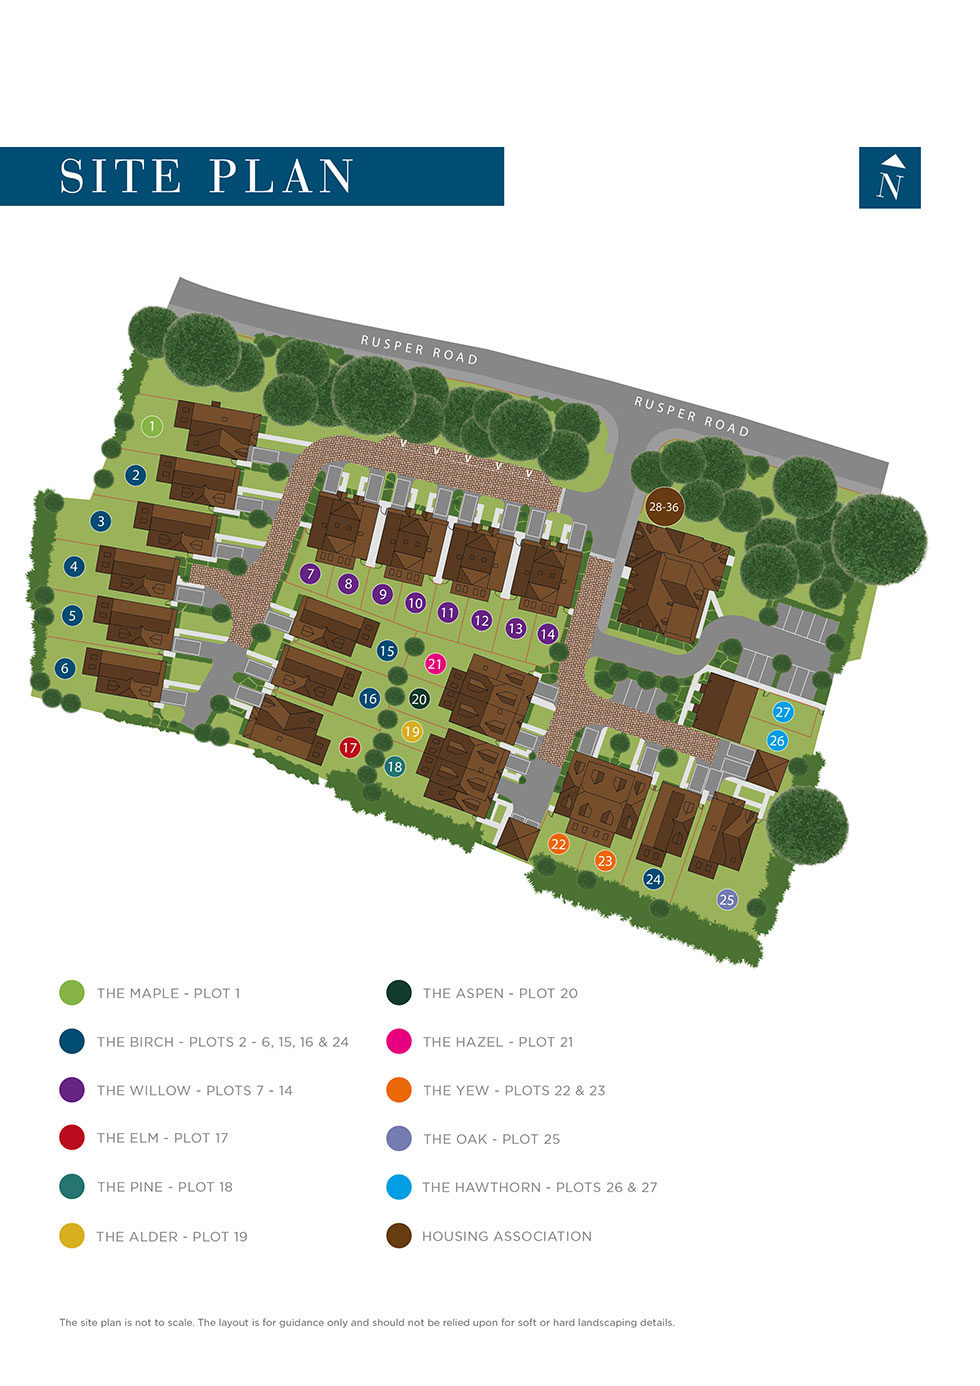 Plot 21 – The Hazel Siteplan